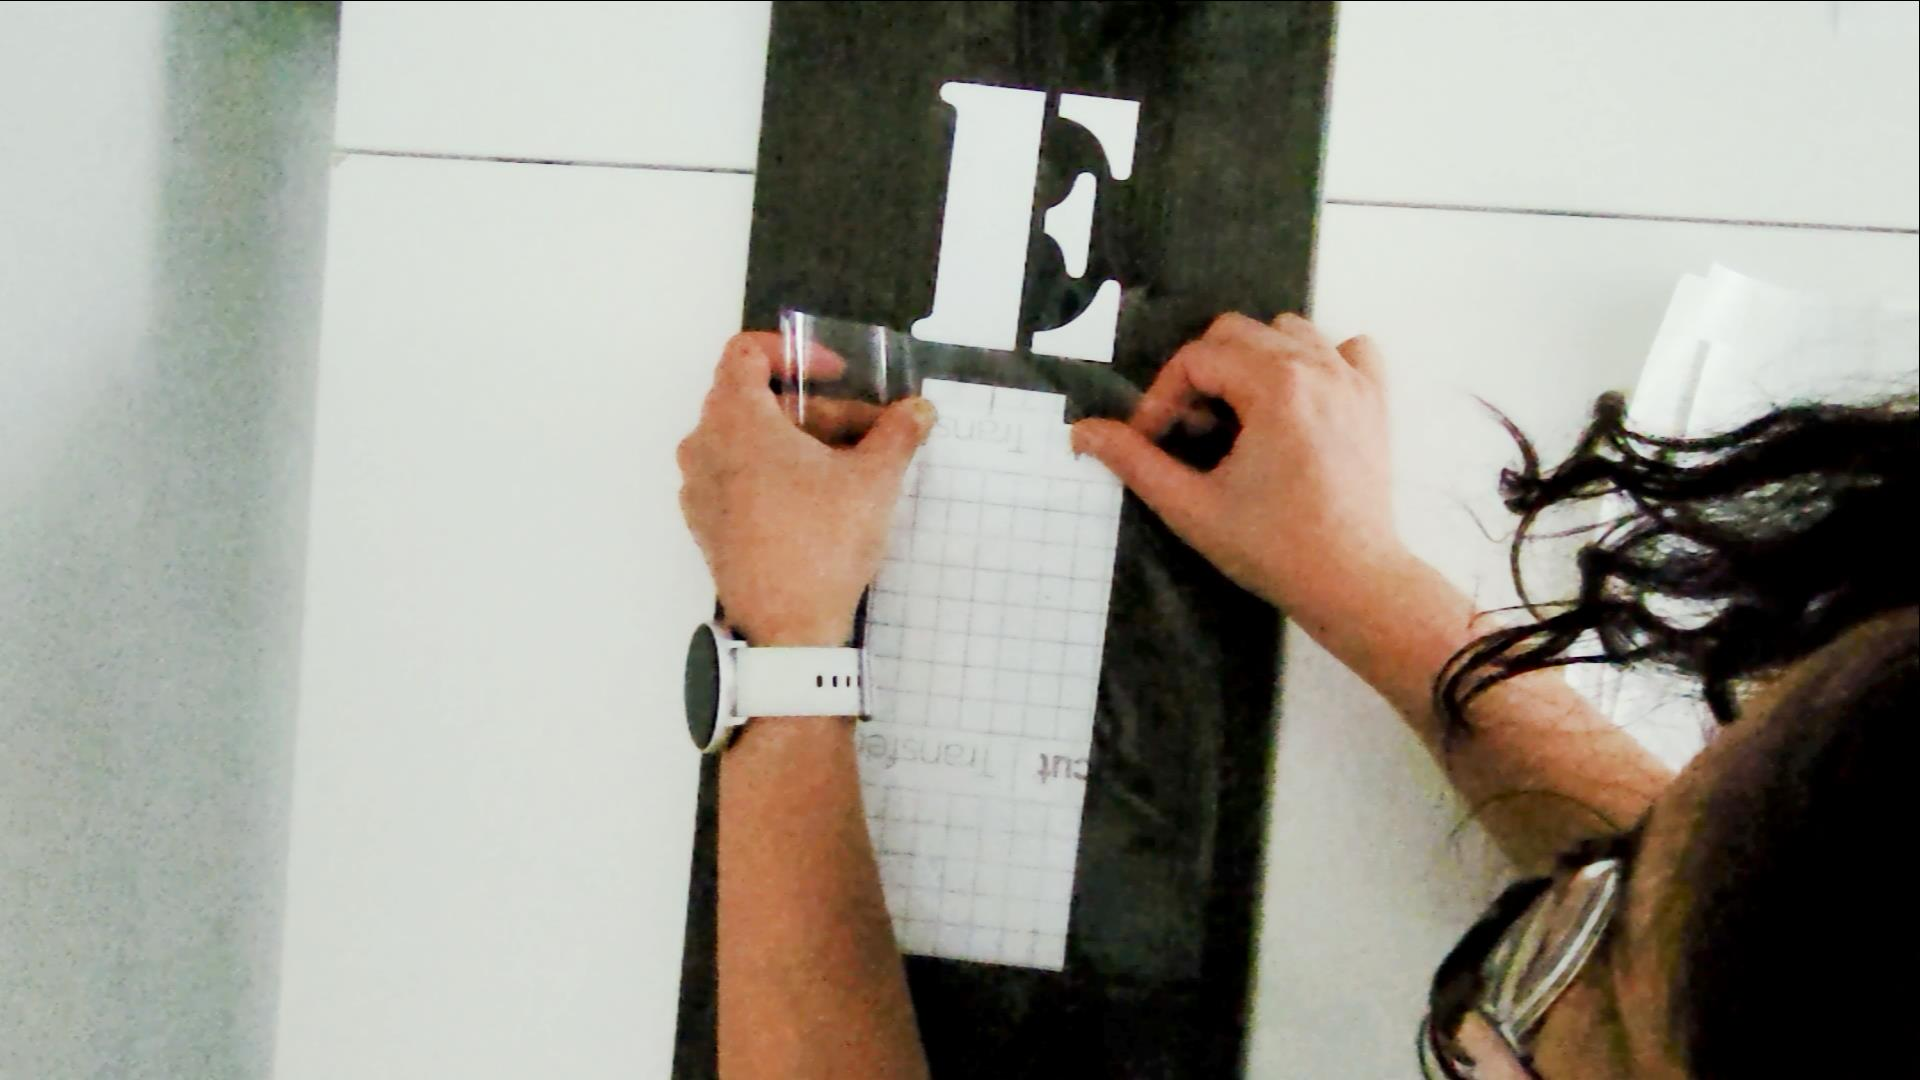 how to align and space the vinyl letters on a vertical welcome sign so they are even